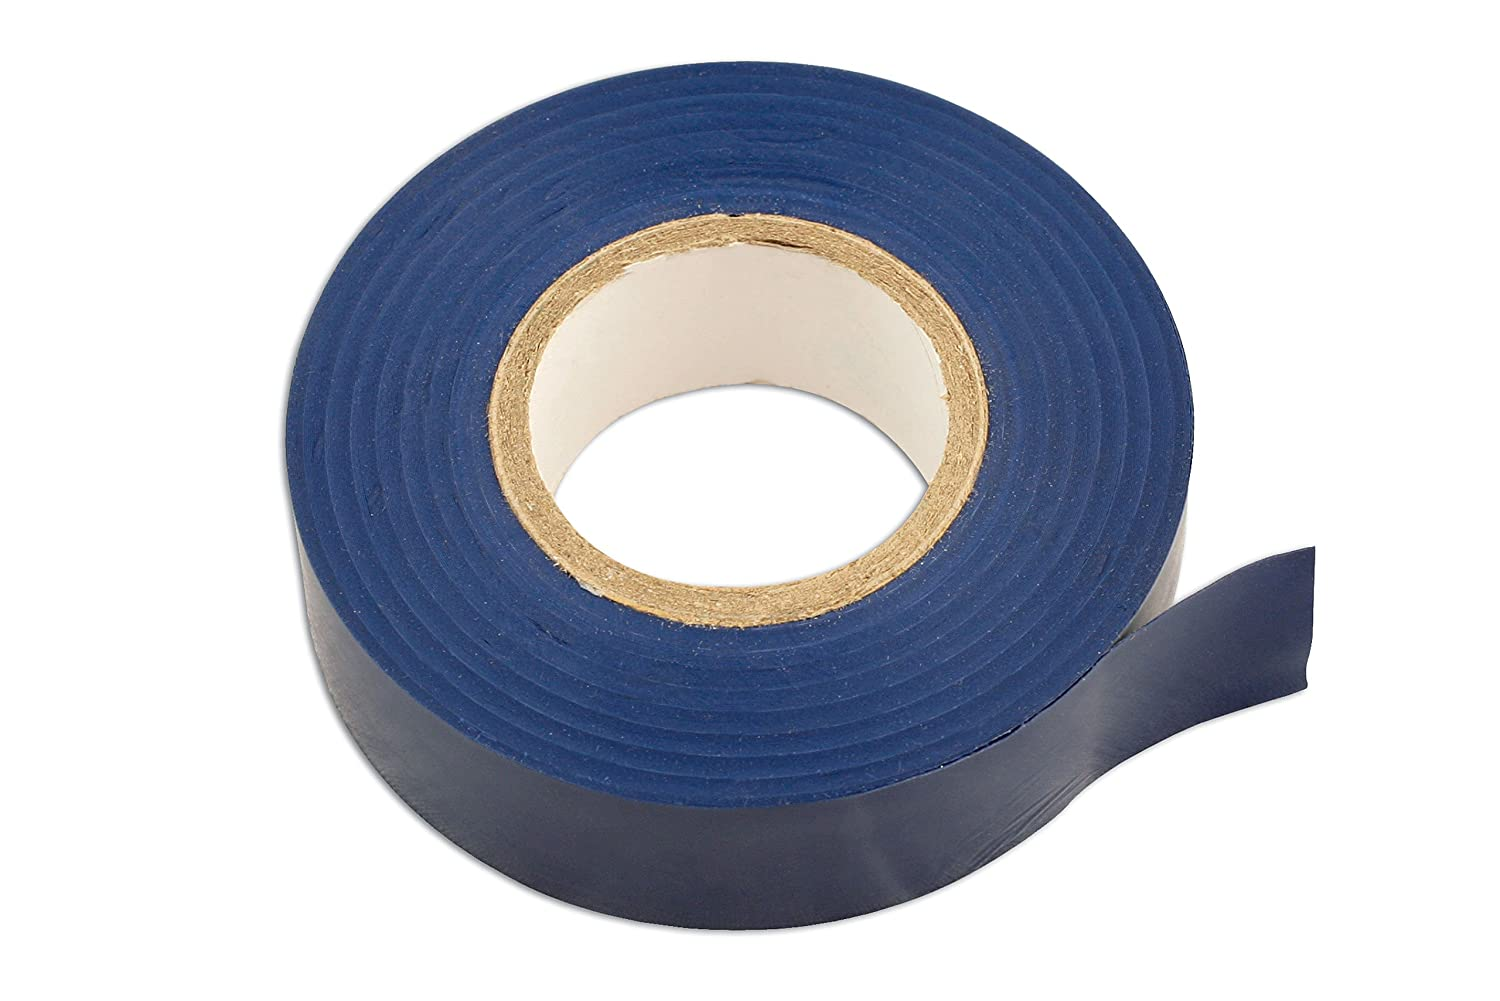 Connect 30375 19 x 20m PVC Insulation Tape - Blue (Pack of 10) The Tool Connection Ltd.